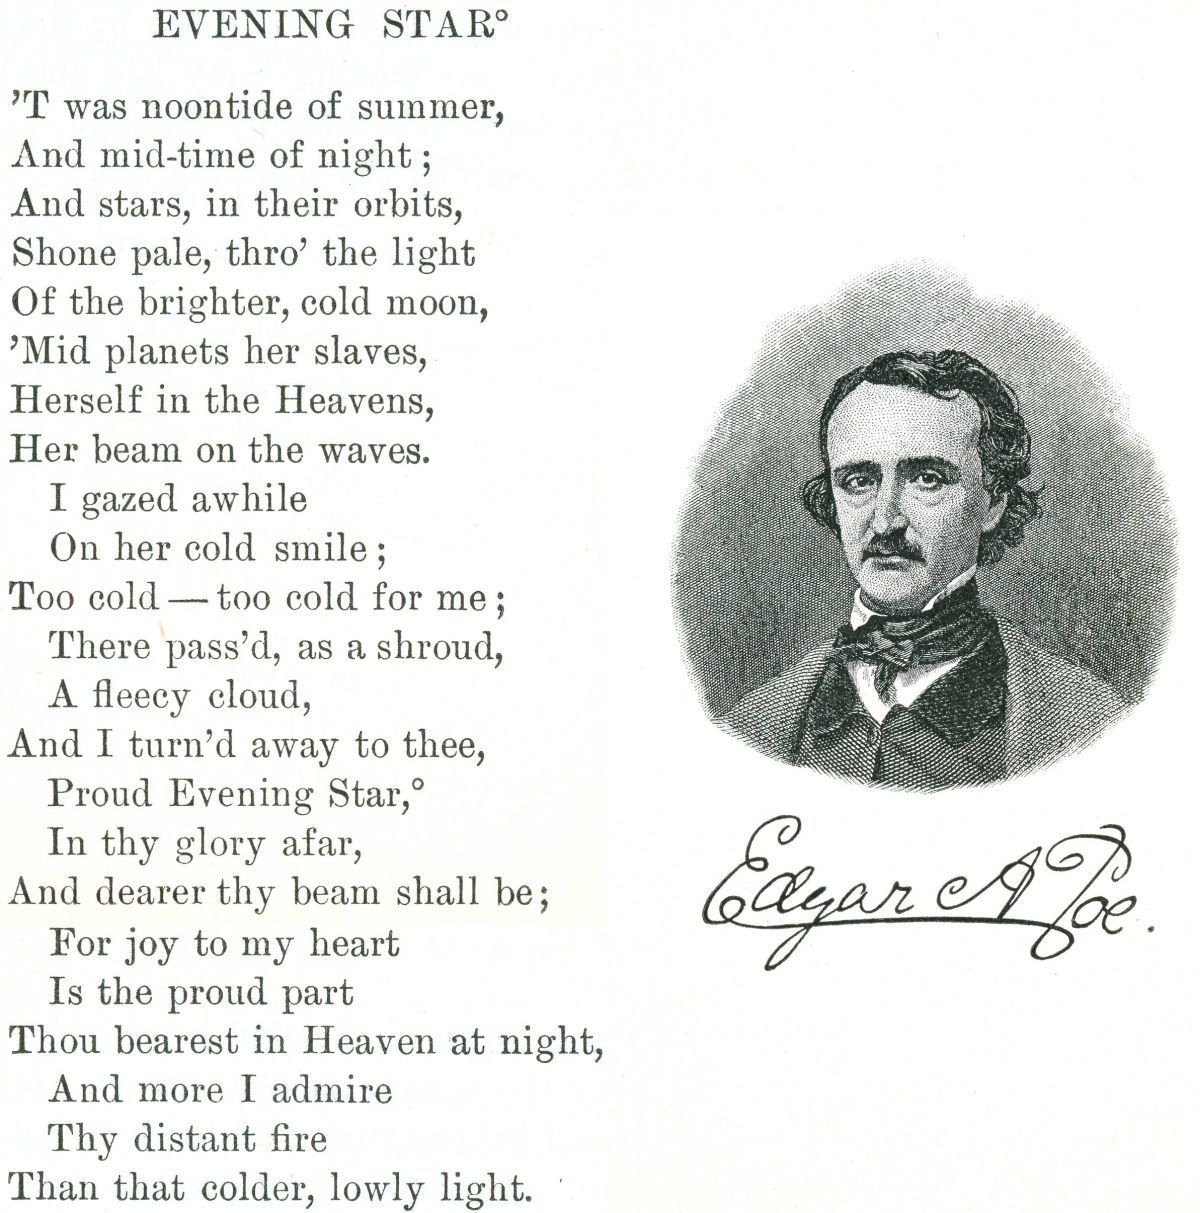 Edgar Allan Poe Evening Star